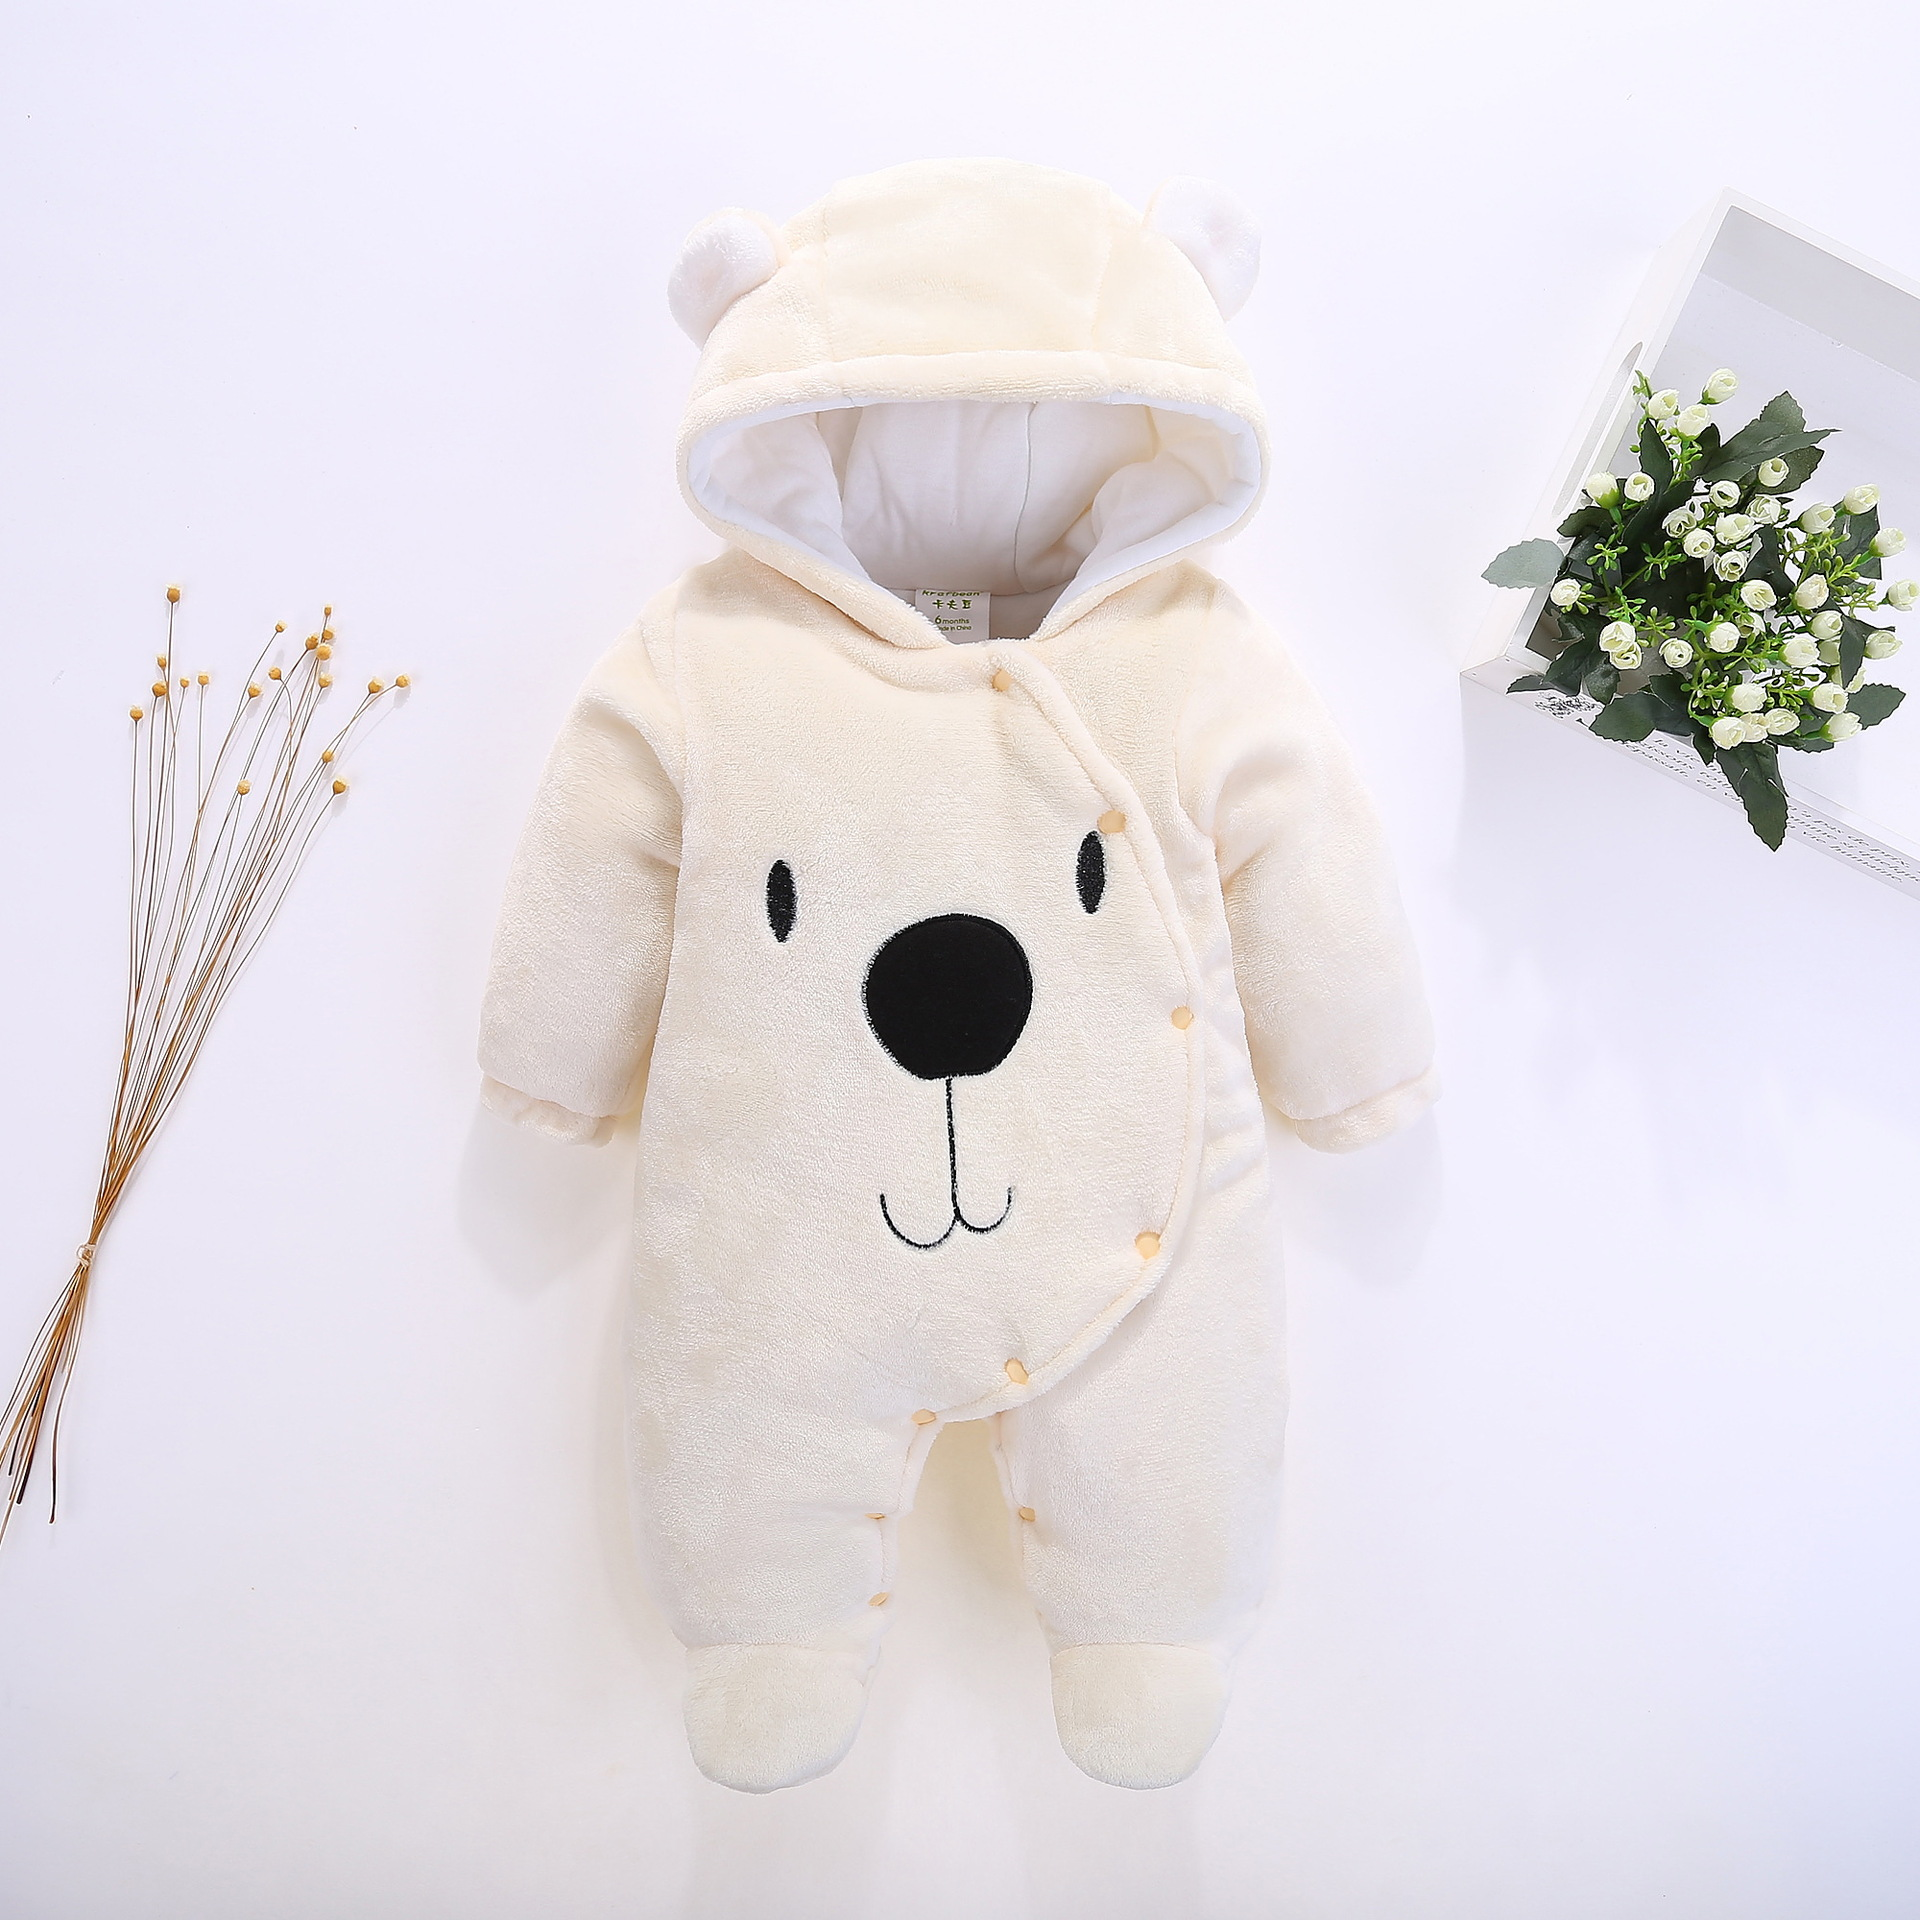 2018 Fleece Infant Baby Animal Overalls Bear Style Kid's Overalls Newborns Funny Clothes Cute Clothes for Baby Footies cute bear head style baby dinner plate tray pink